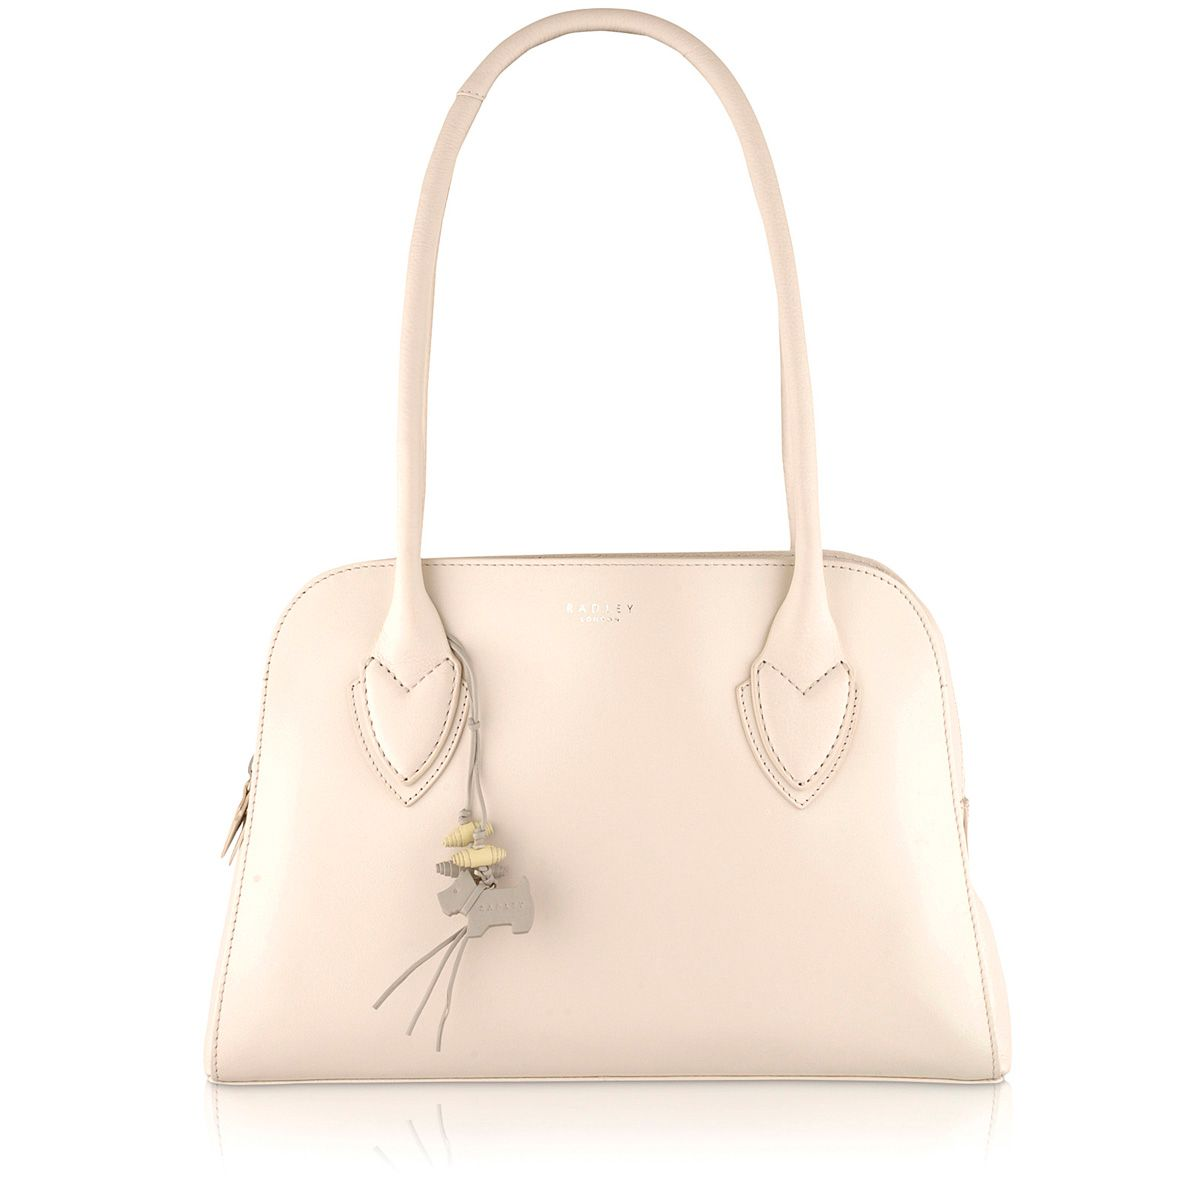 Aldgate cream medium leather shoulder bag